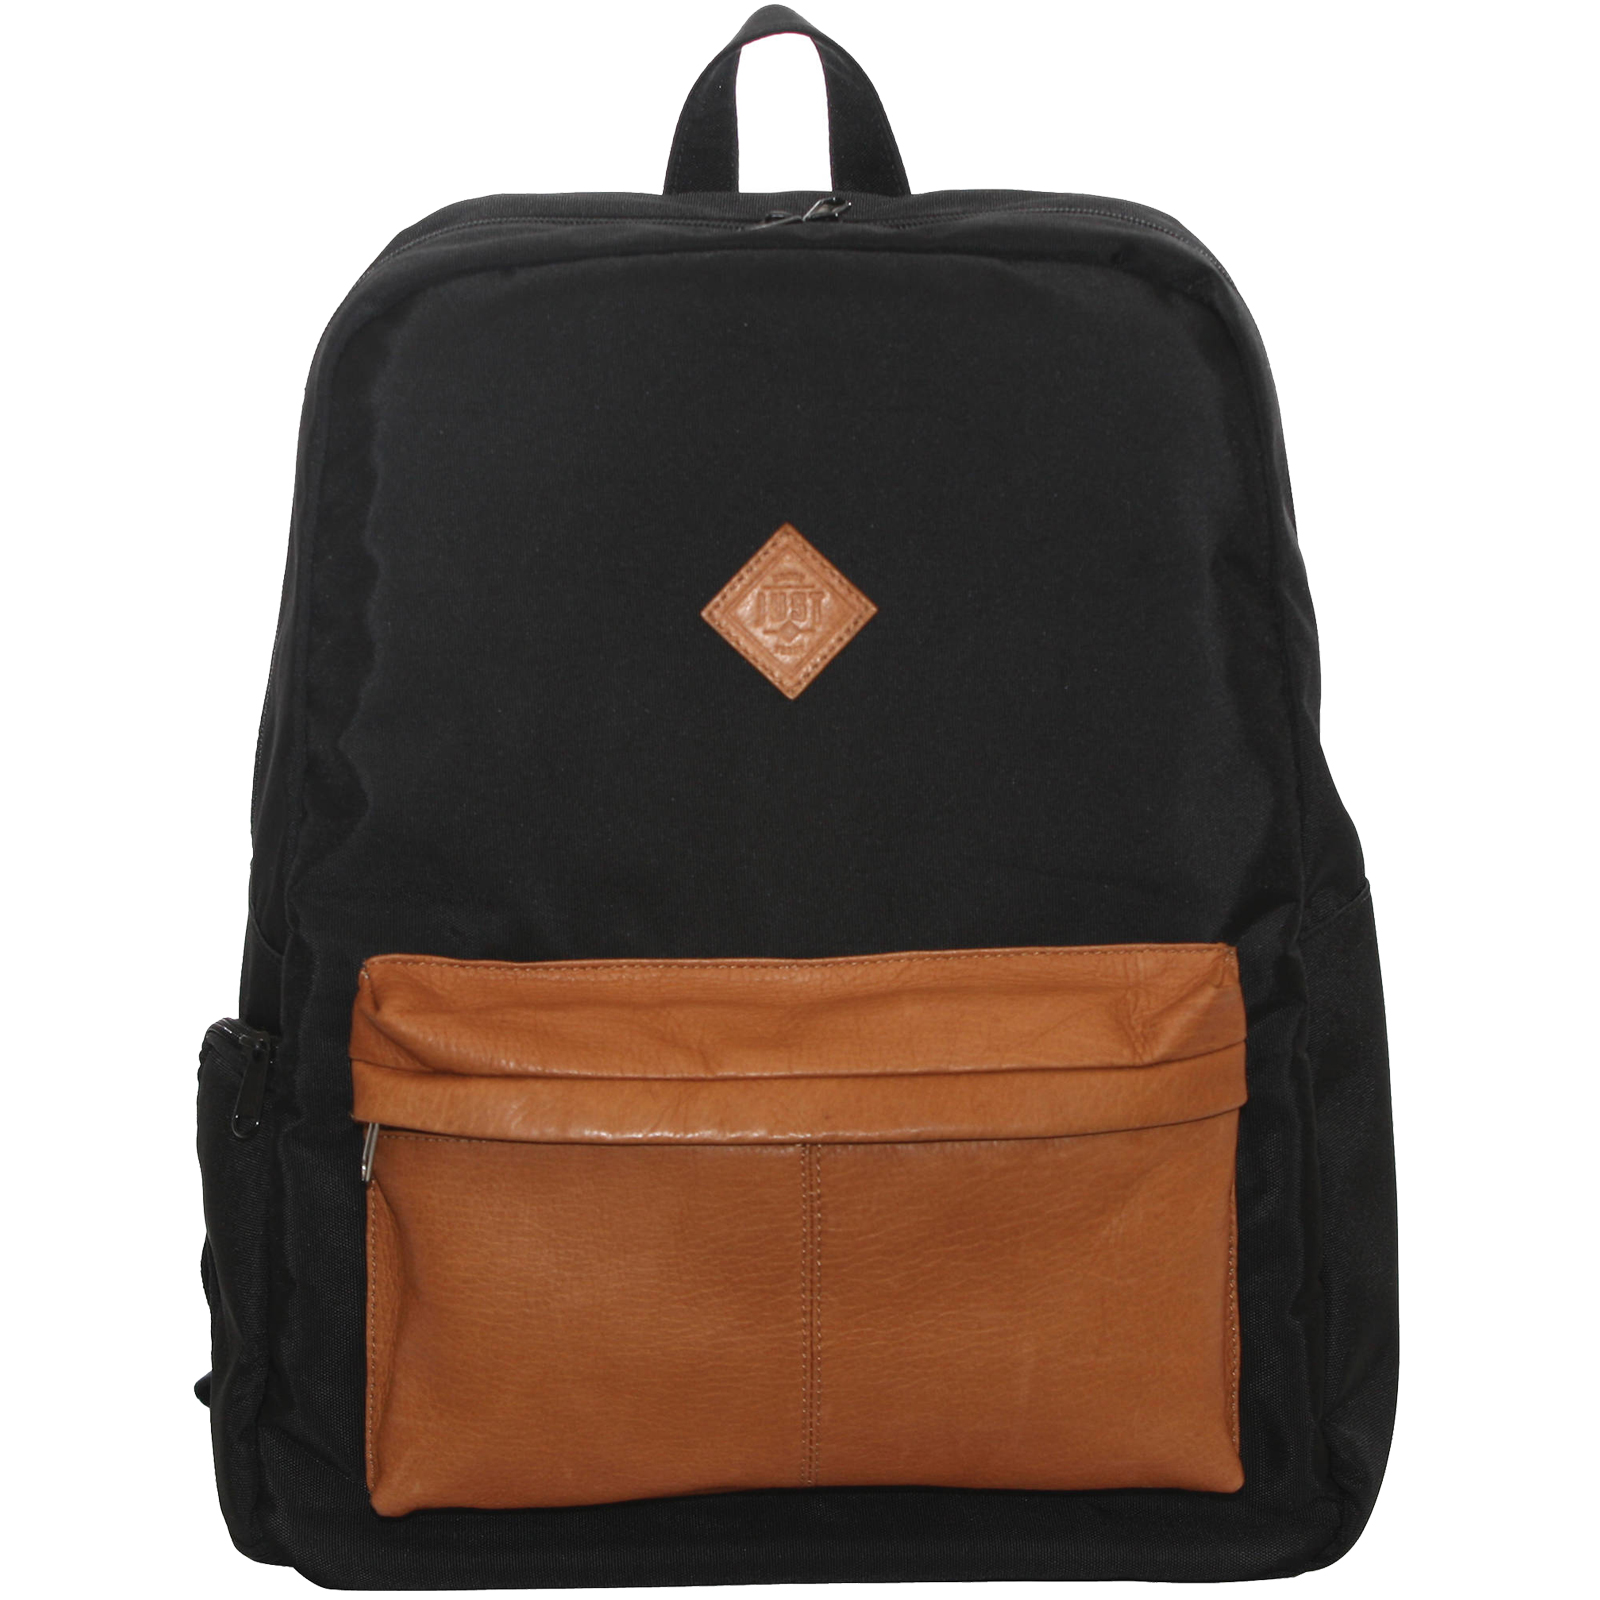 "Jill-E 15"" Just Dupont Laptop Backpack Case (Black/Brown)"